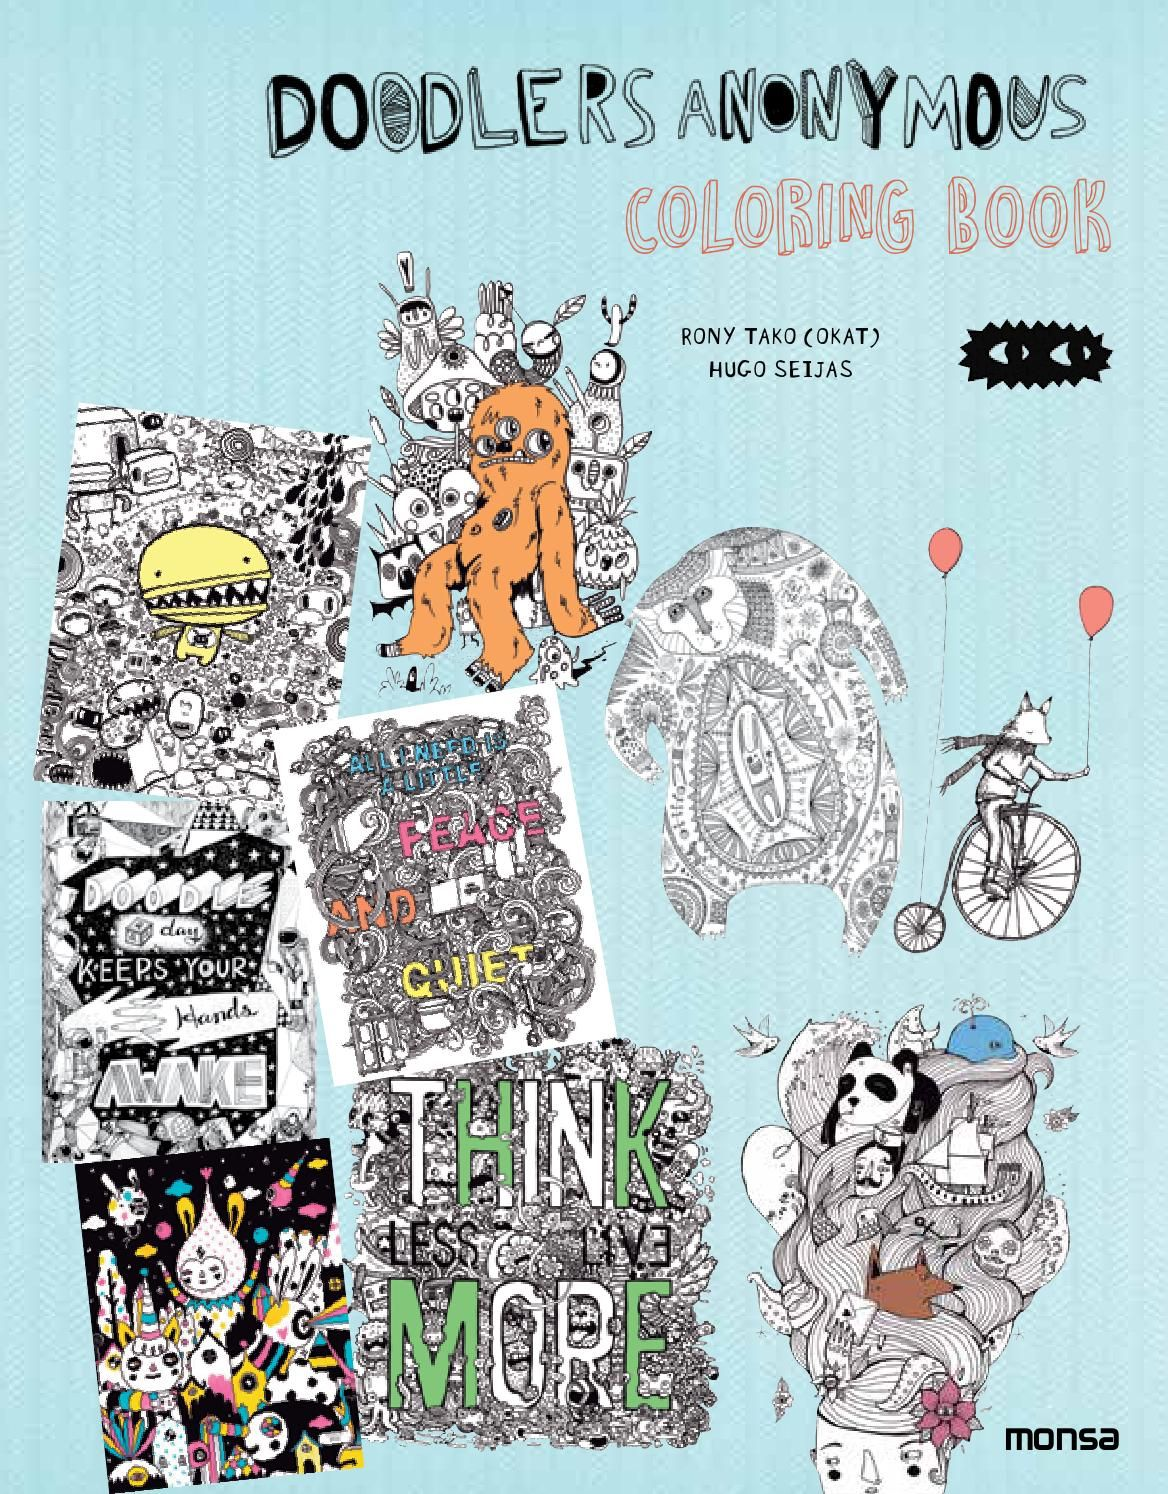 DOODLERS ANONYMOUS COLORING BOOK ISBN 978 84 16500 20 8